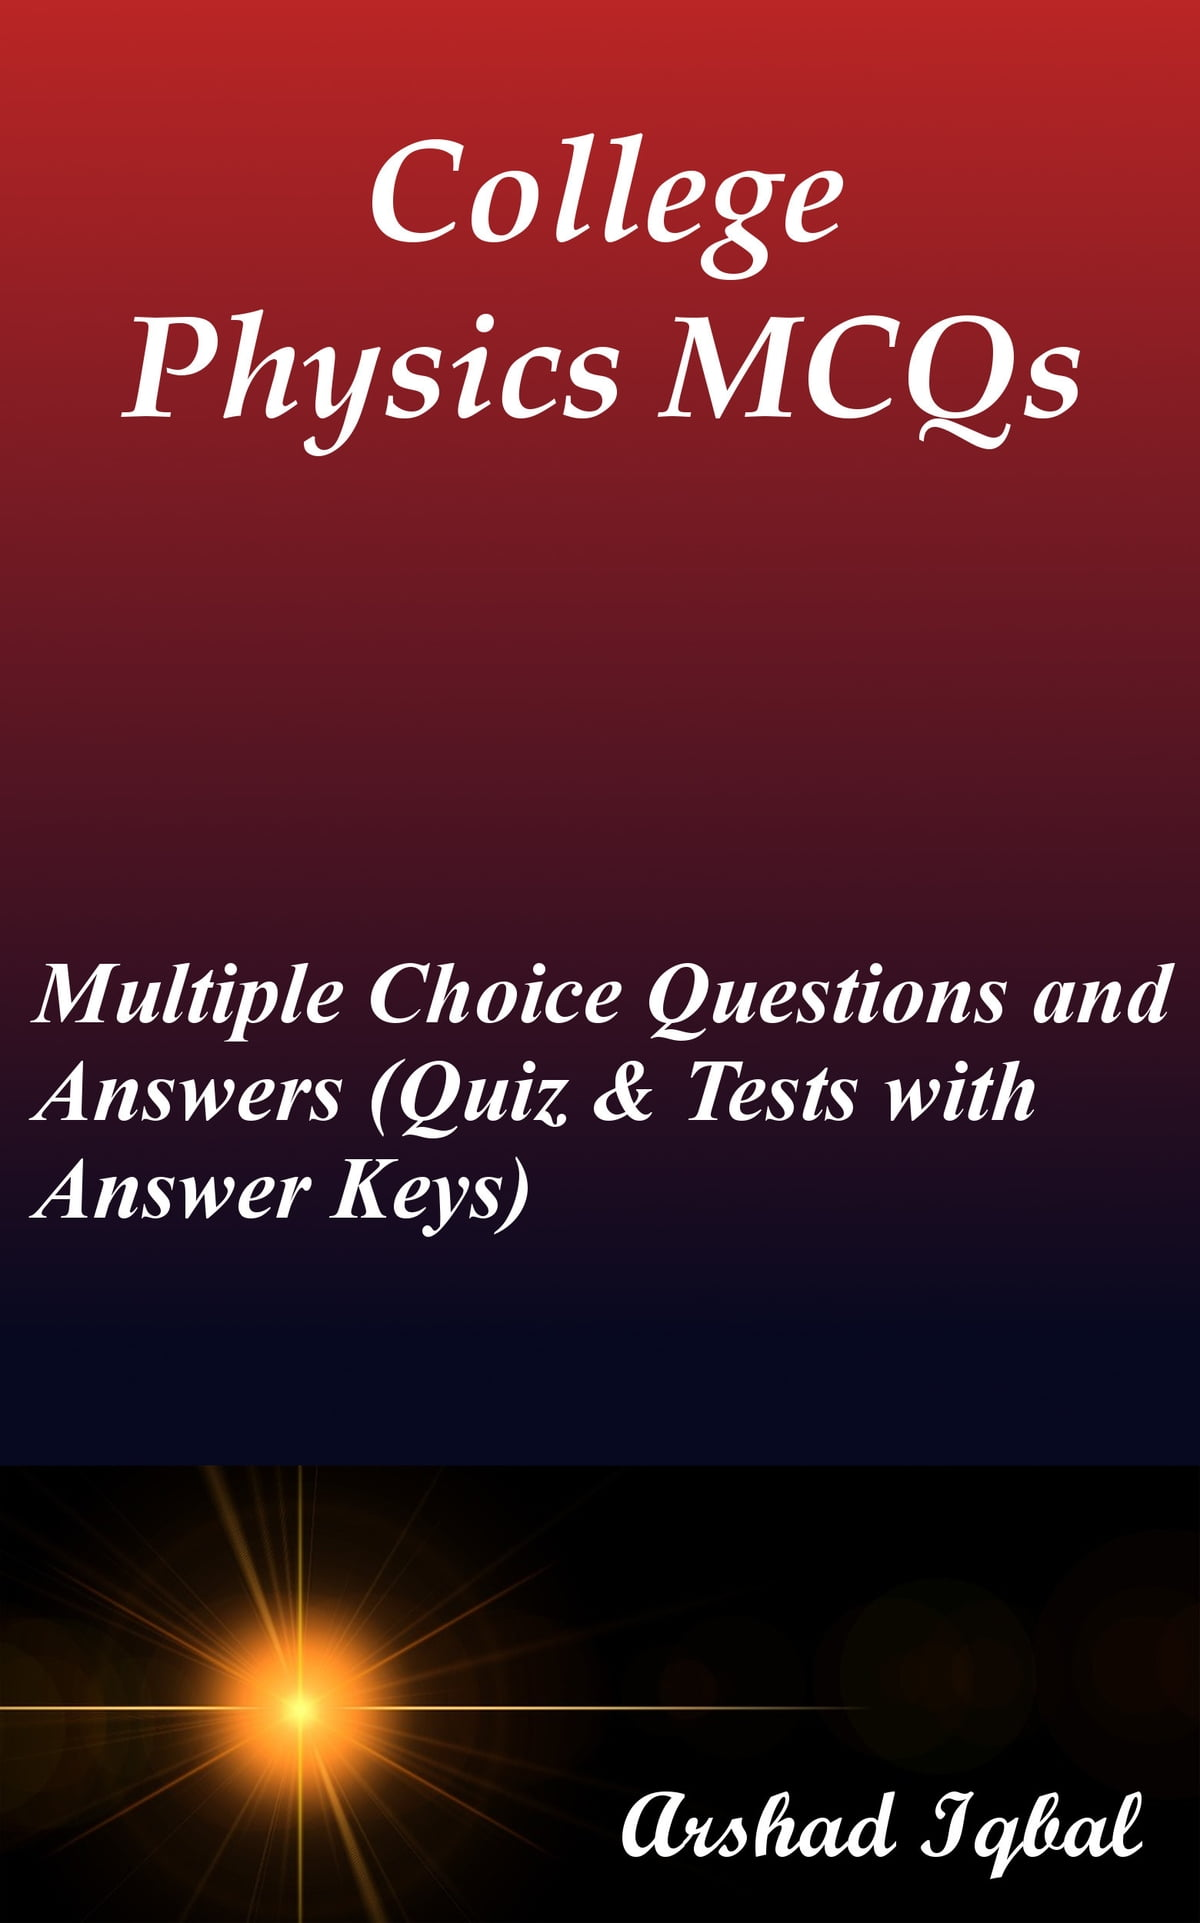 College Physics MCQs: Multiple Choice Questions and Answers (Quiz & Tests  with Answer Keys) ebook by Arshad Iqbal - Rakuten Kobo